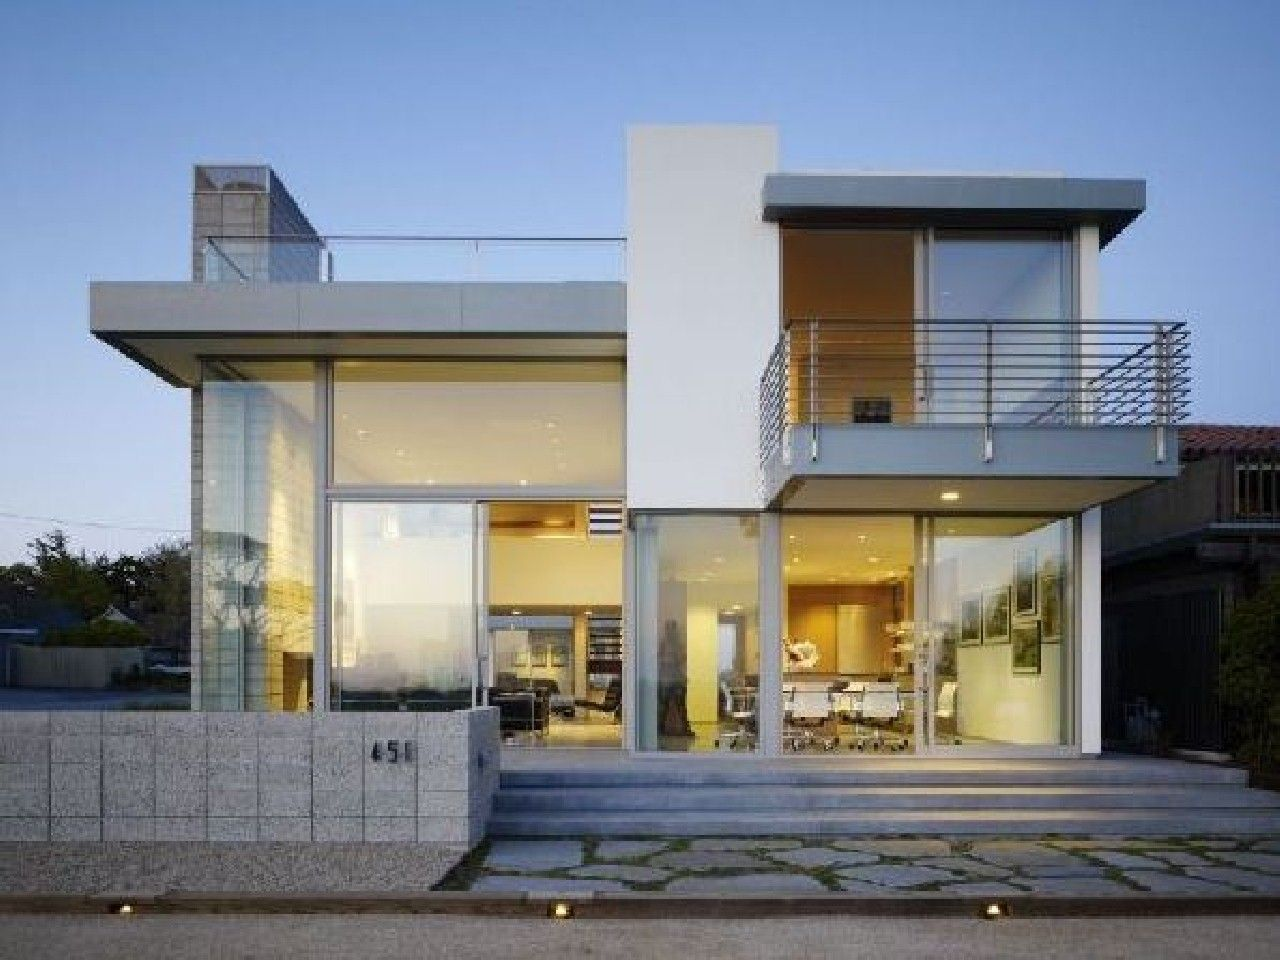 Architecture House Design Ideas awesome minimalist beach house design ideas - stylendesigns